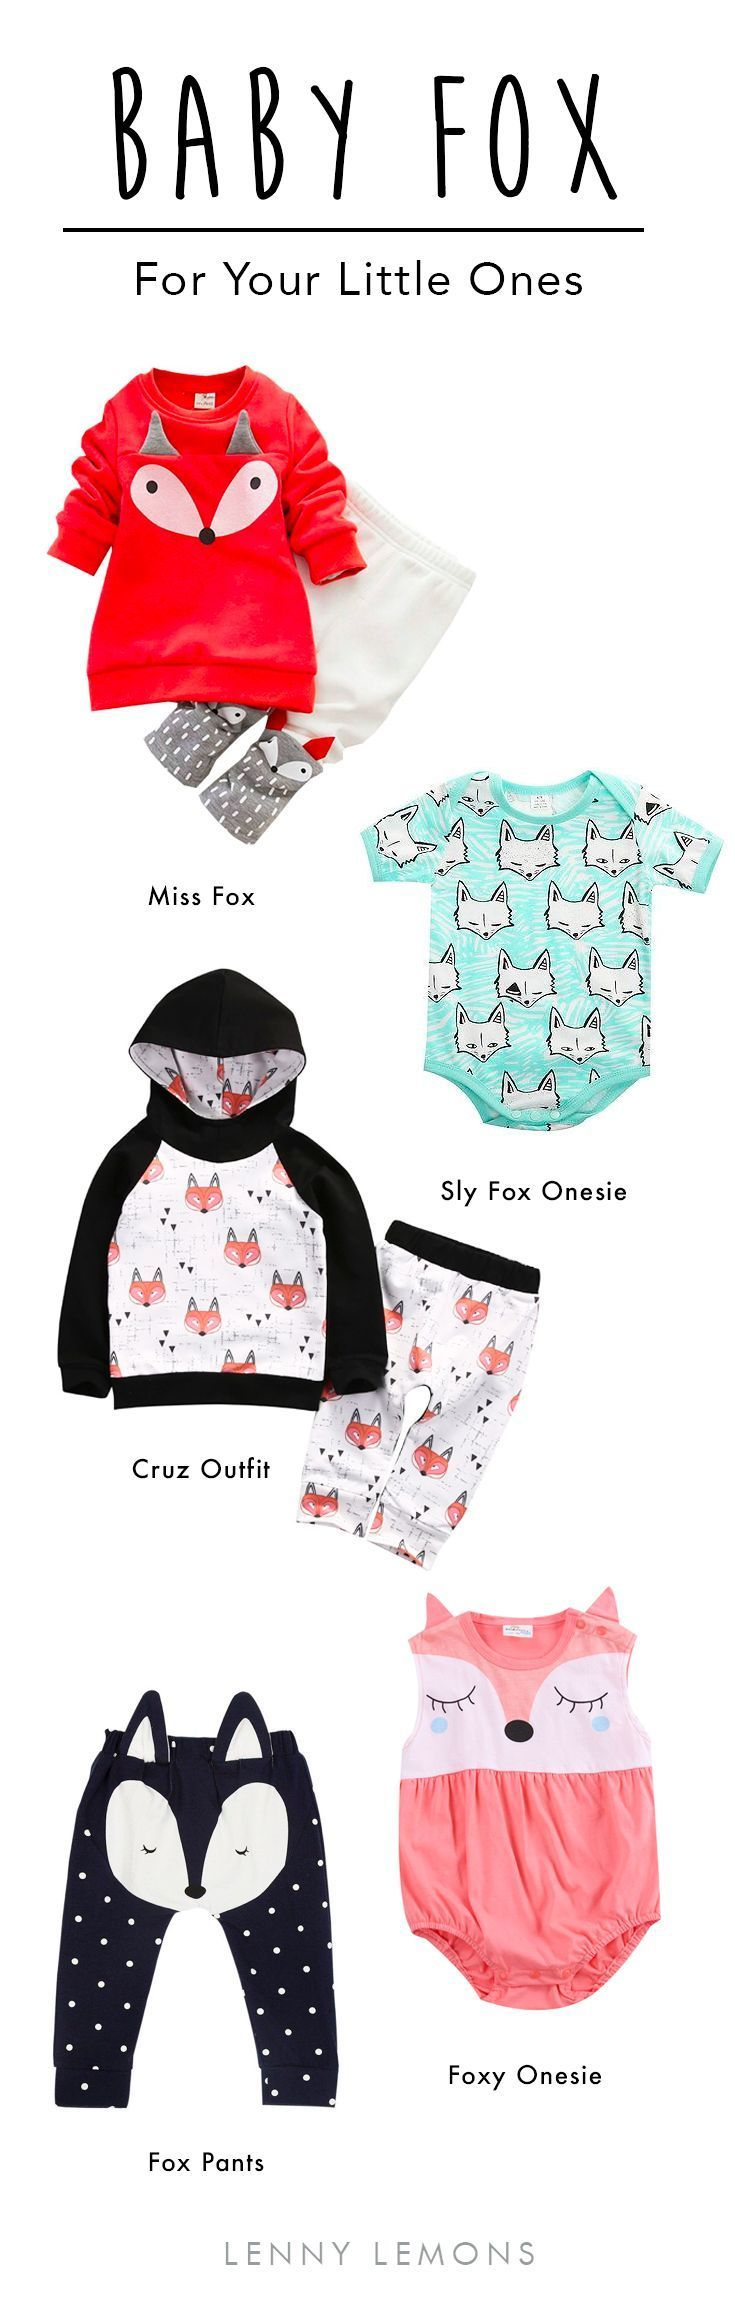 FREE USA SHIPPING! Cutest baby clothes for your little ones, baby girl clothes, baby boy clothes, cheap baby clothes, newborn baby clothes, baby clothes online, newborn clothes, baby girl dresses, cute baby clothes, baby clothes sale, lenny lemons.